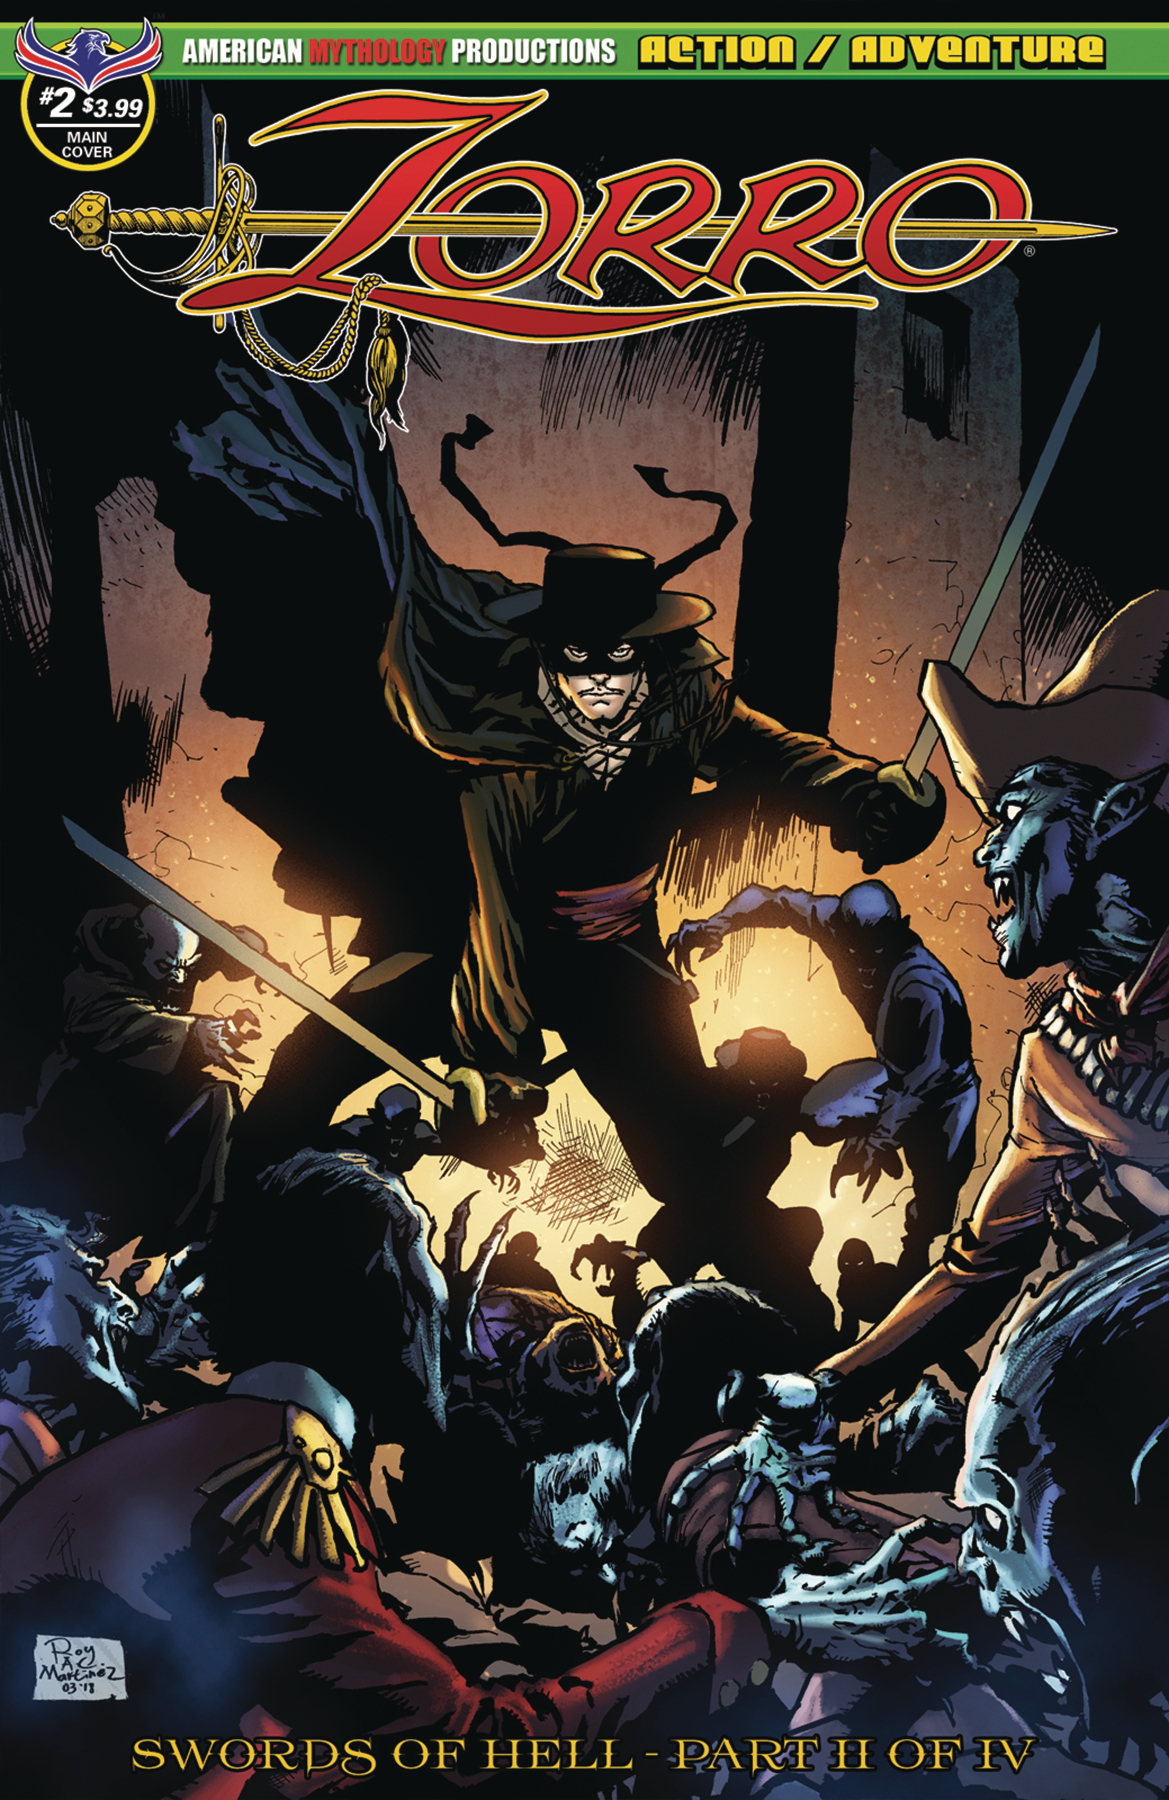 ZORRO SWORDS OF HELL #2 MARTINEZ MAIN CVR